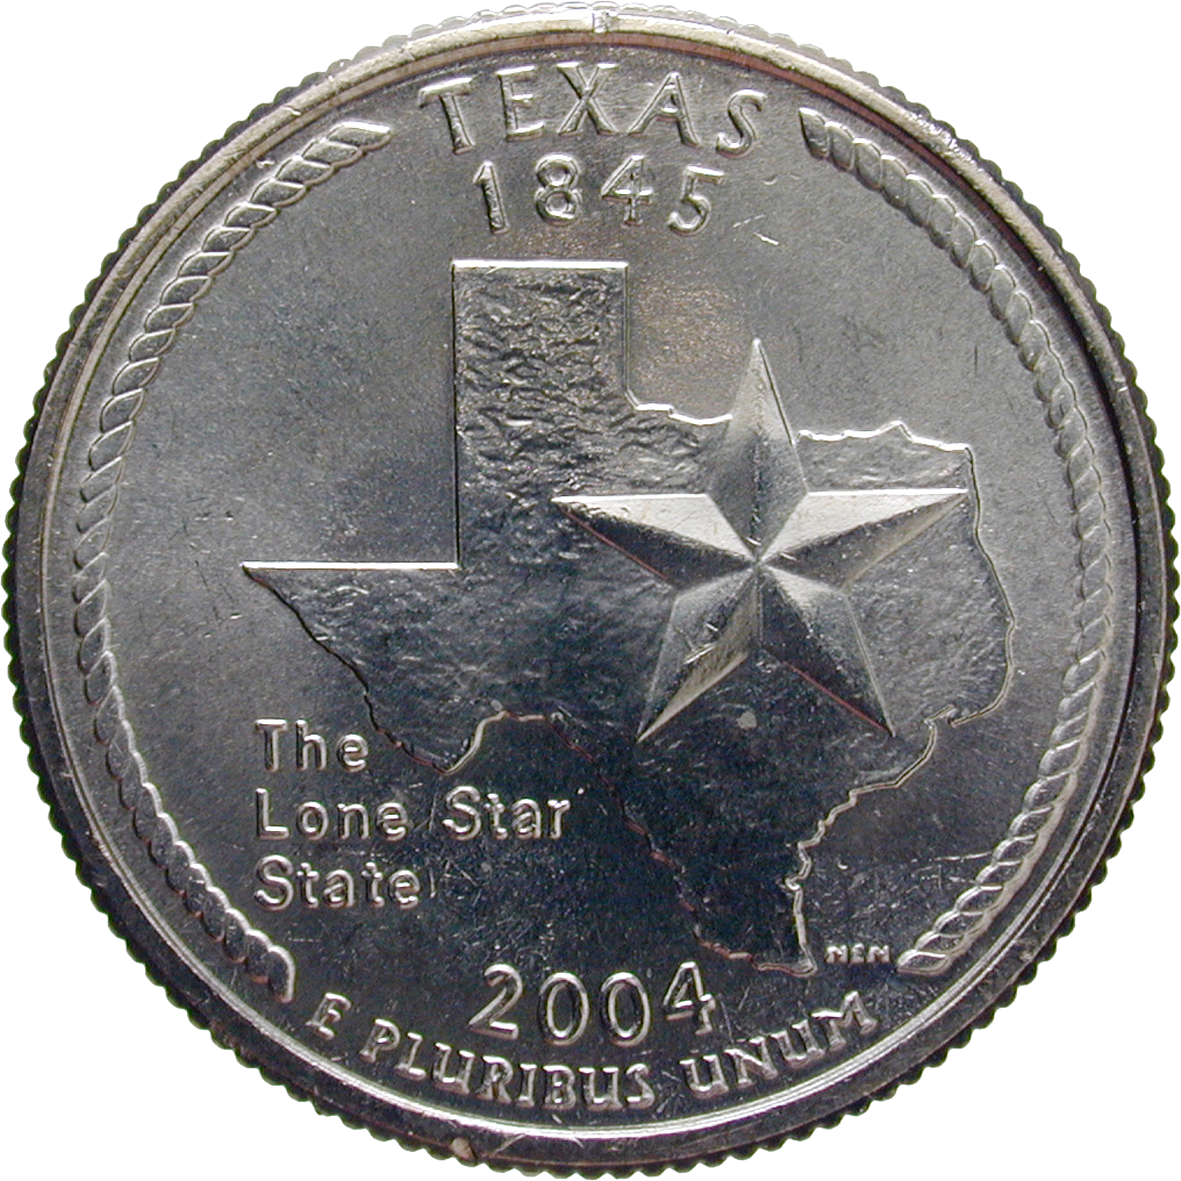 United States of America, Quarter Dollar 2004 (reverse)